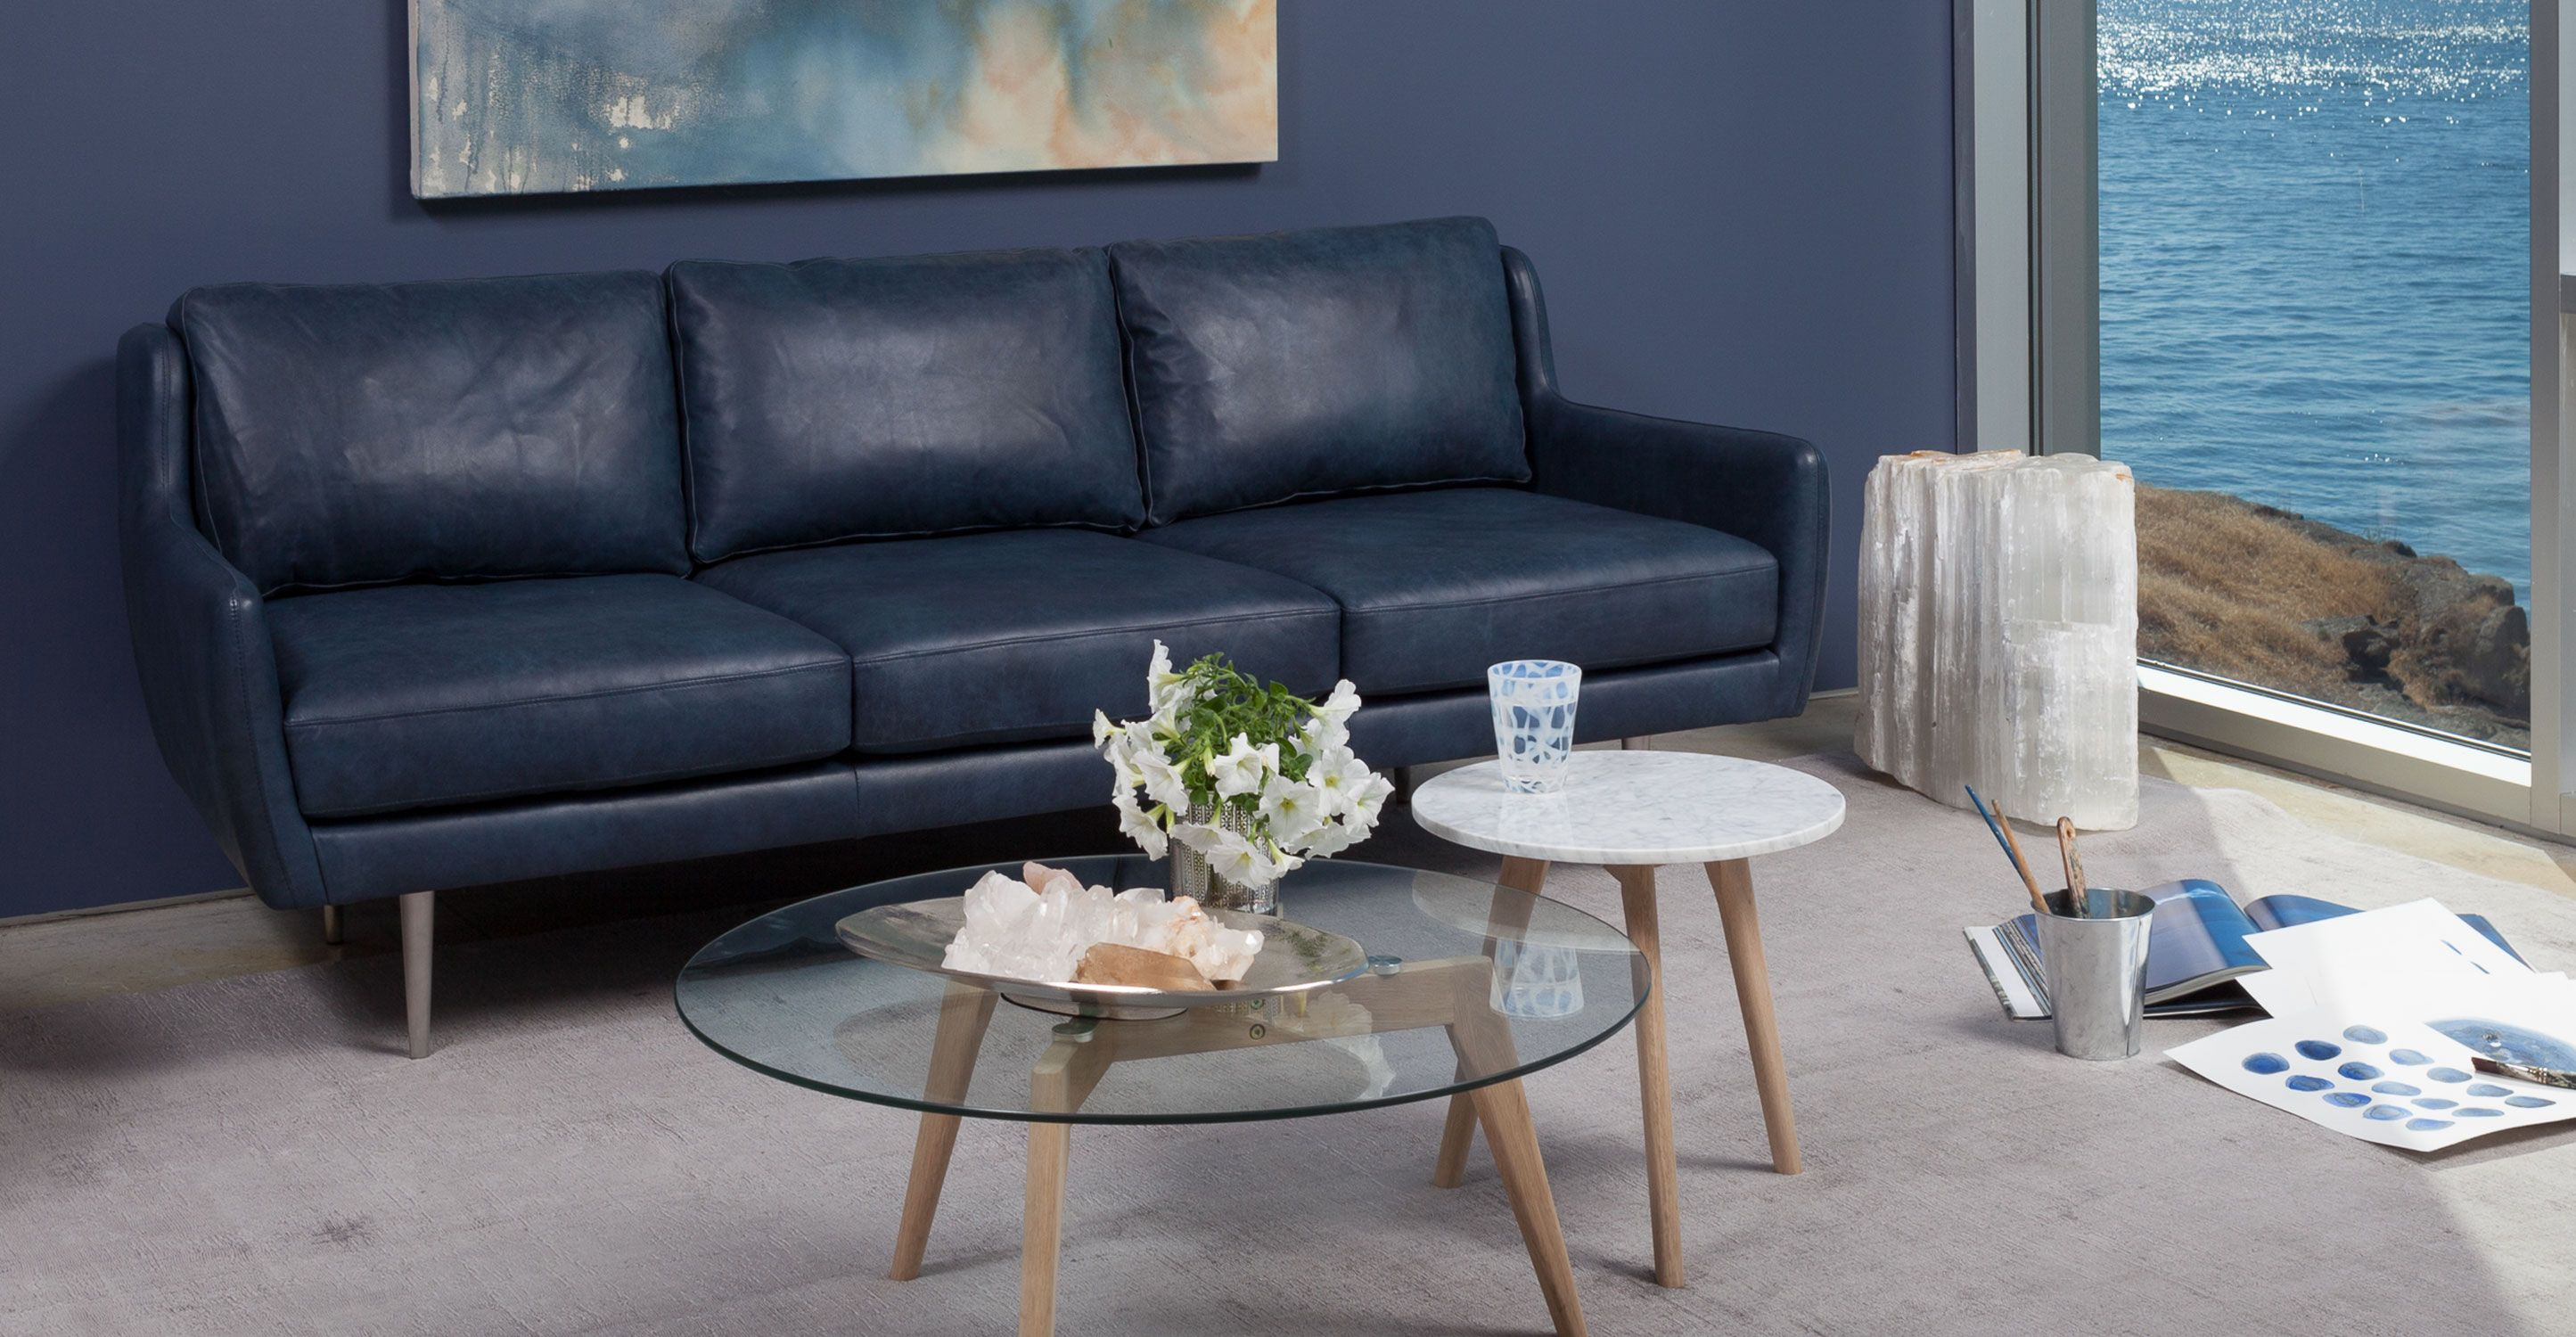 Matrix Oxford Blue Sofa Sofas Article Modern Mid Century And Scandinavian Furniture Blue Leather Sofa Mid Century Modern Sofa Blue Sofa